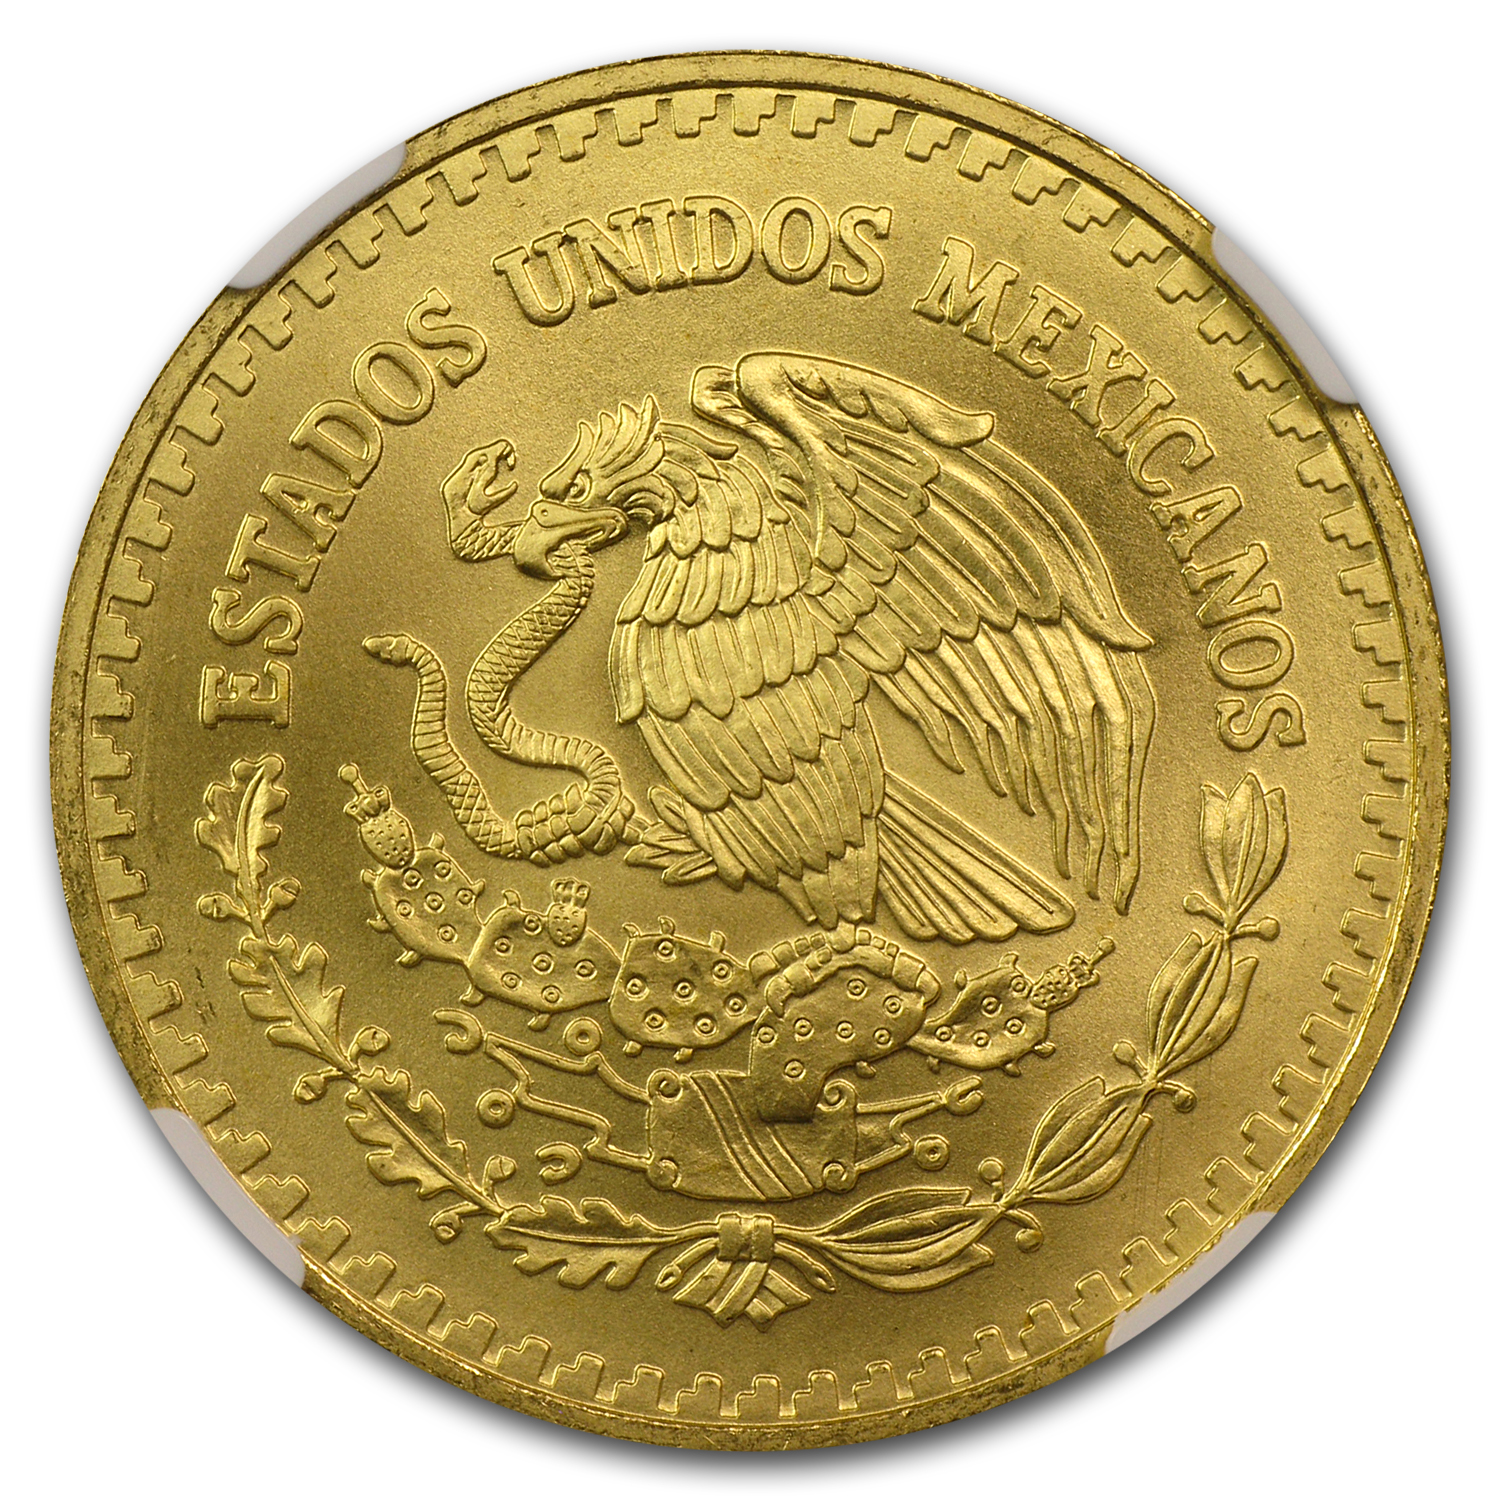 1993 Mexico 1 oz Gold Libertad MS-69 NGC